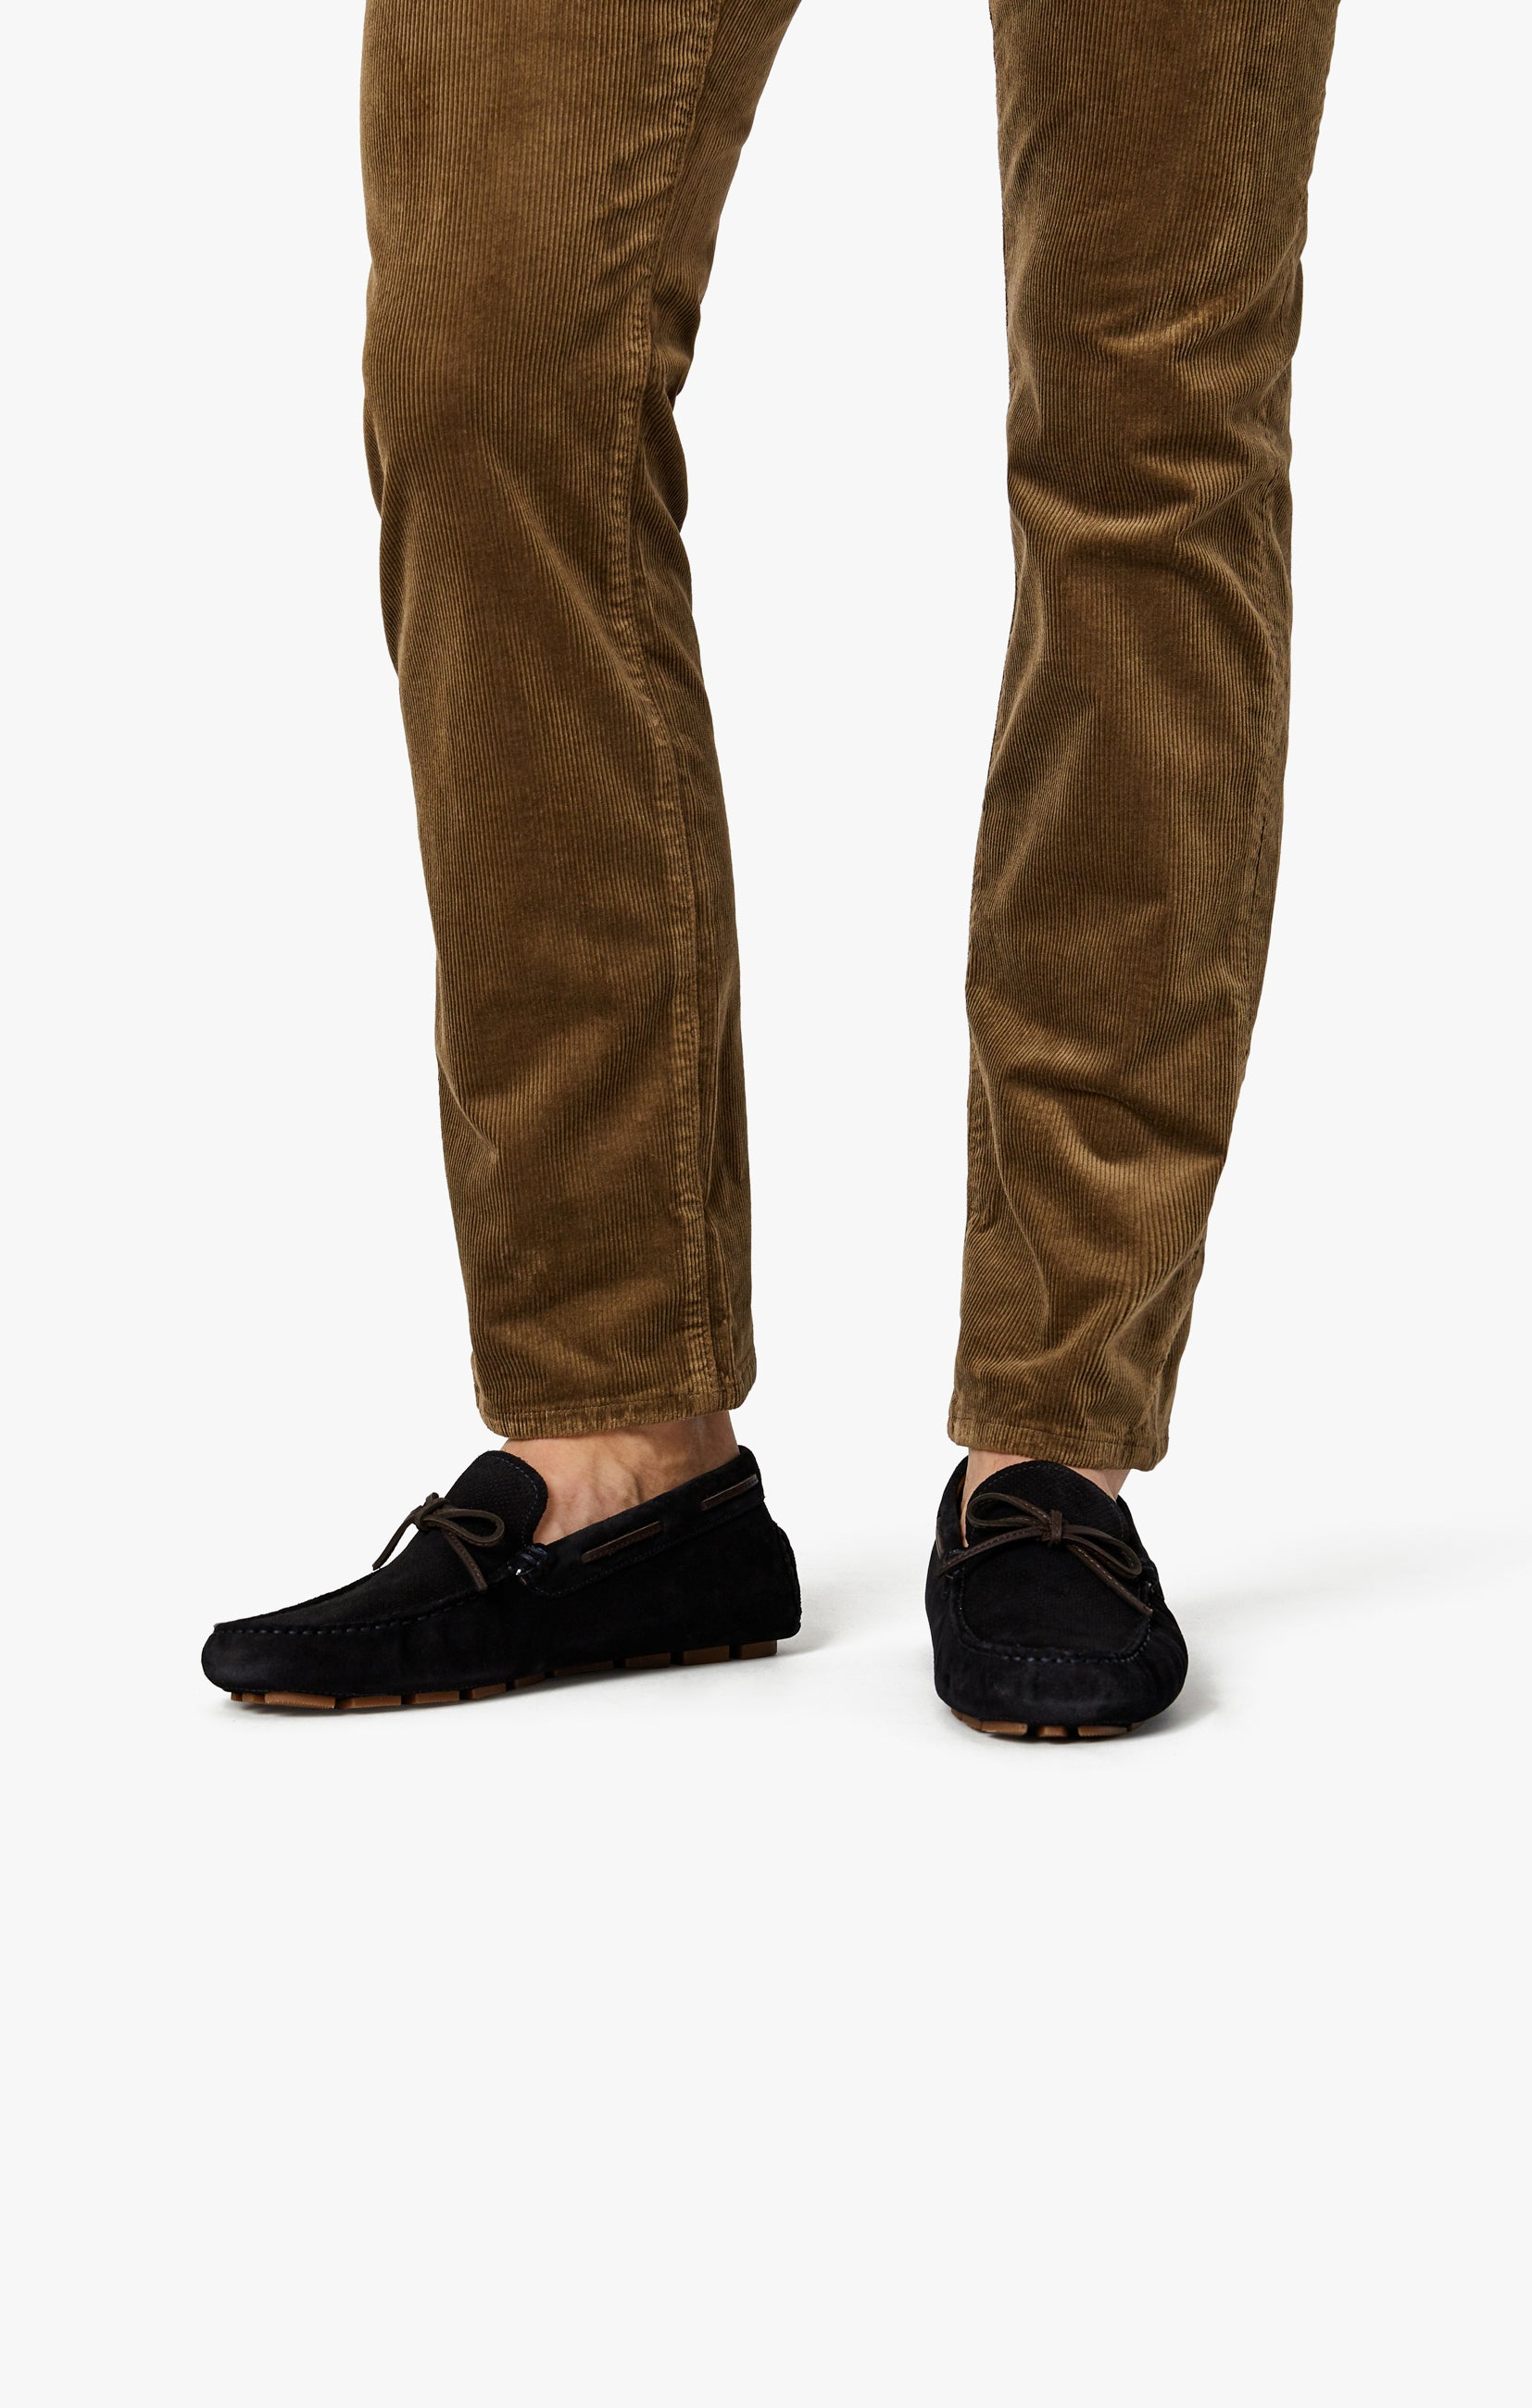 Charisma Relaxed Straight Pants in Tobacco Cord Image 8